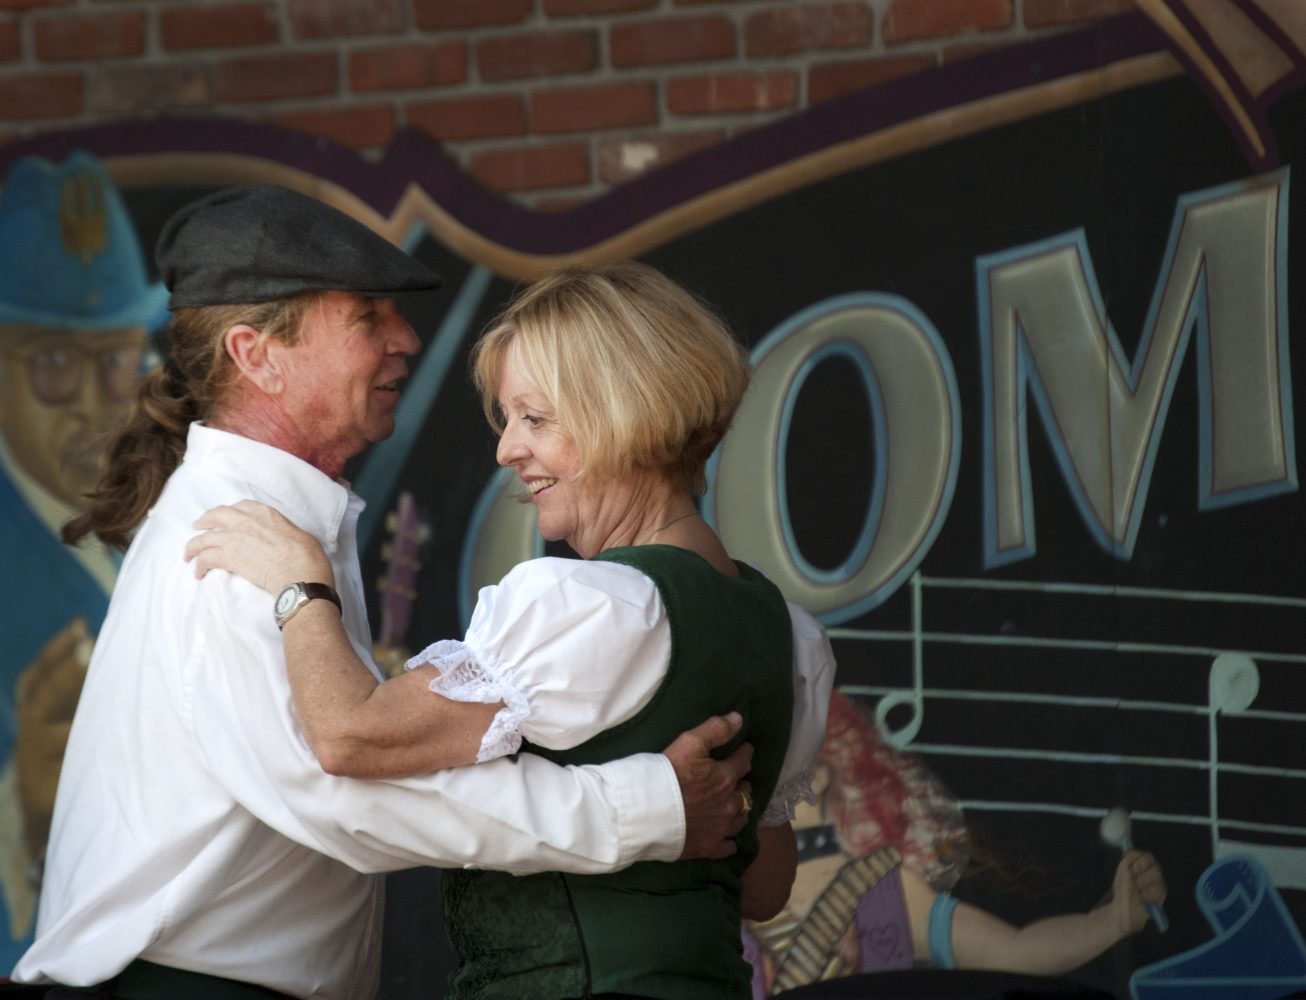 Michael Croft and Sabine Lanninger partner dance as part of the Irish set dancing performances by the Gainesville's Inisheer Irish Dance Company at Bo Diddley Community Plaza Sunday.